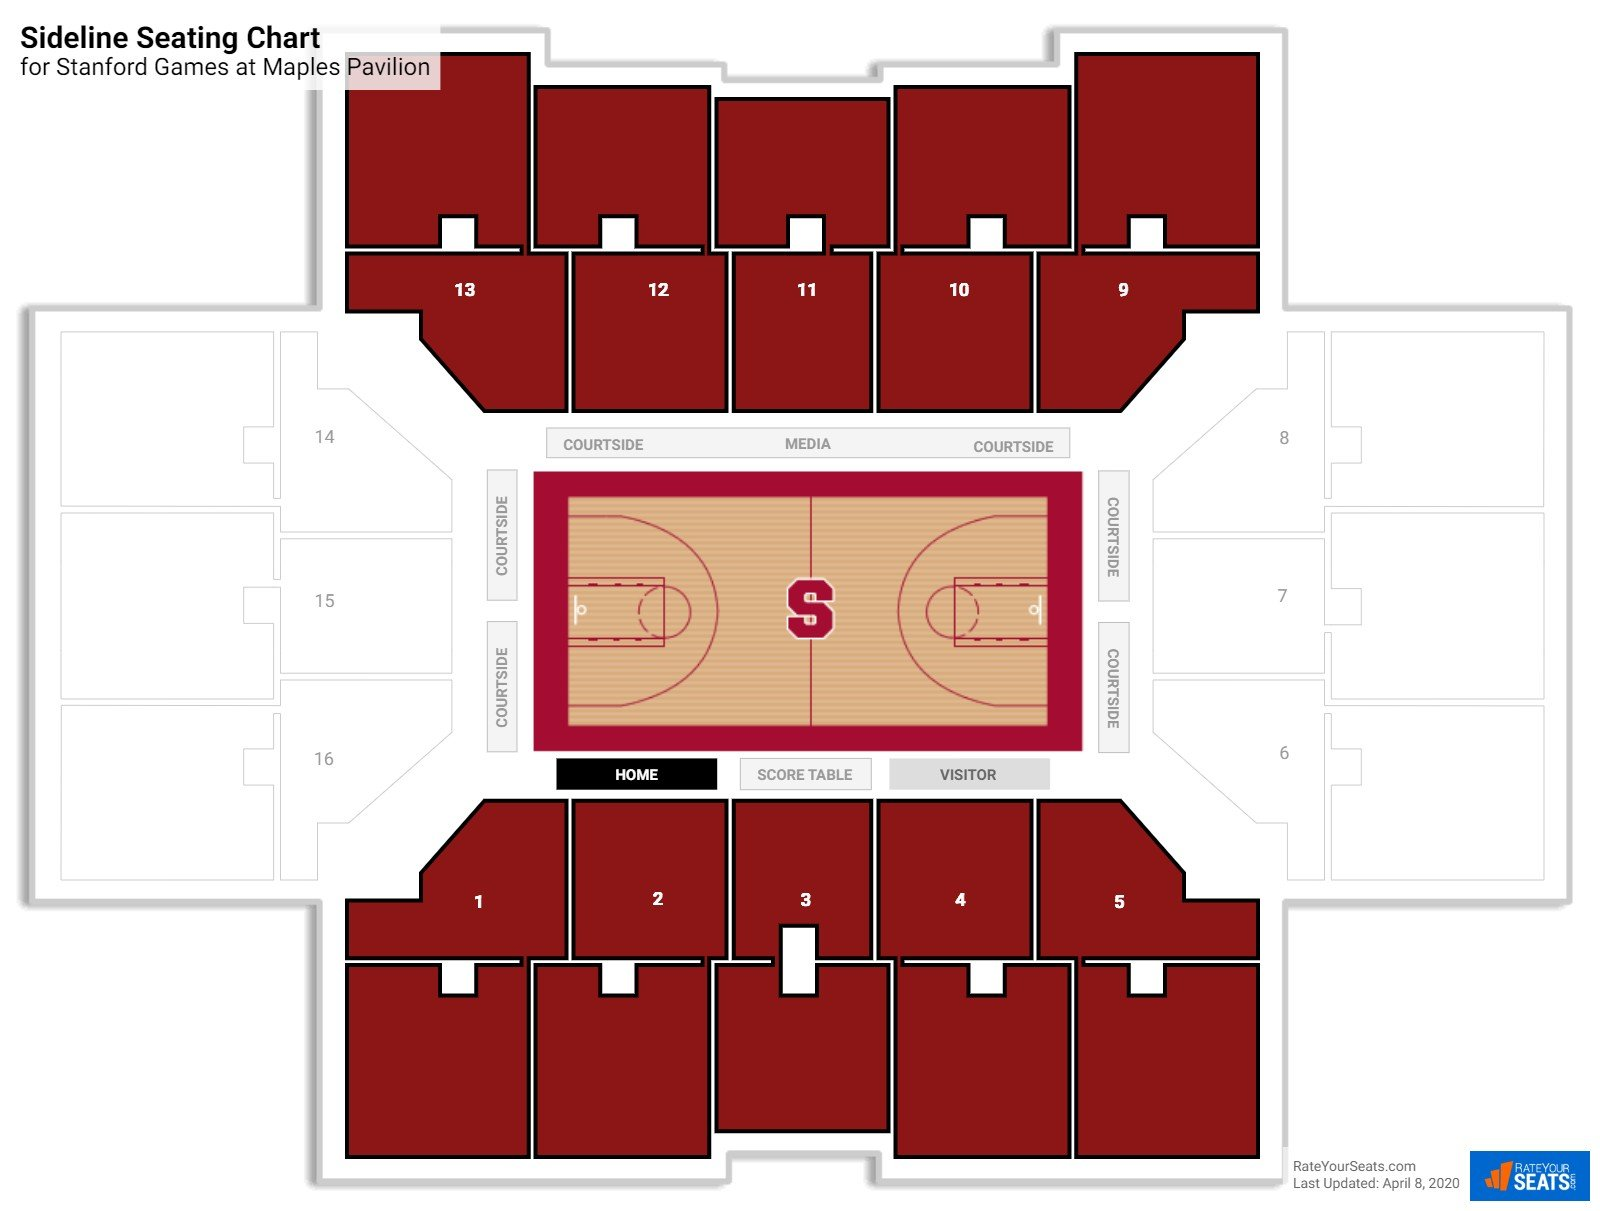 Maples pavilion stanford seating guide rateyourseats com